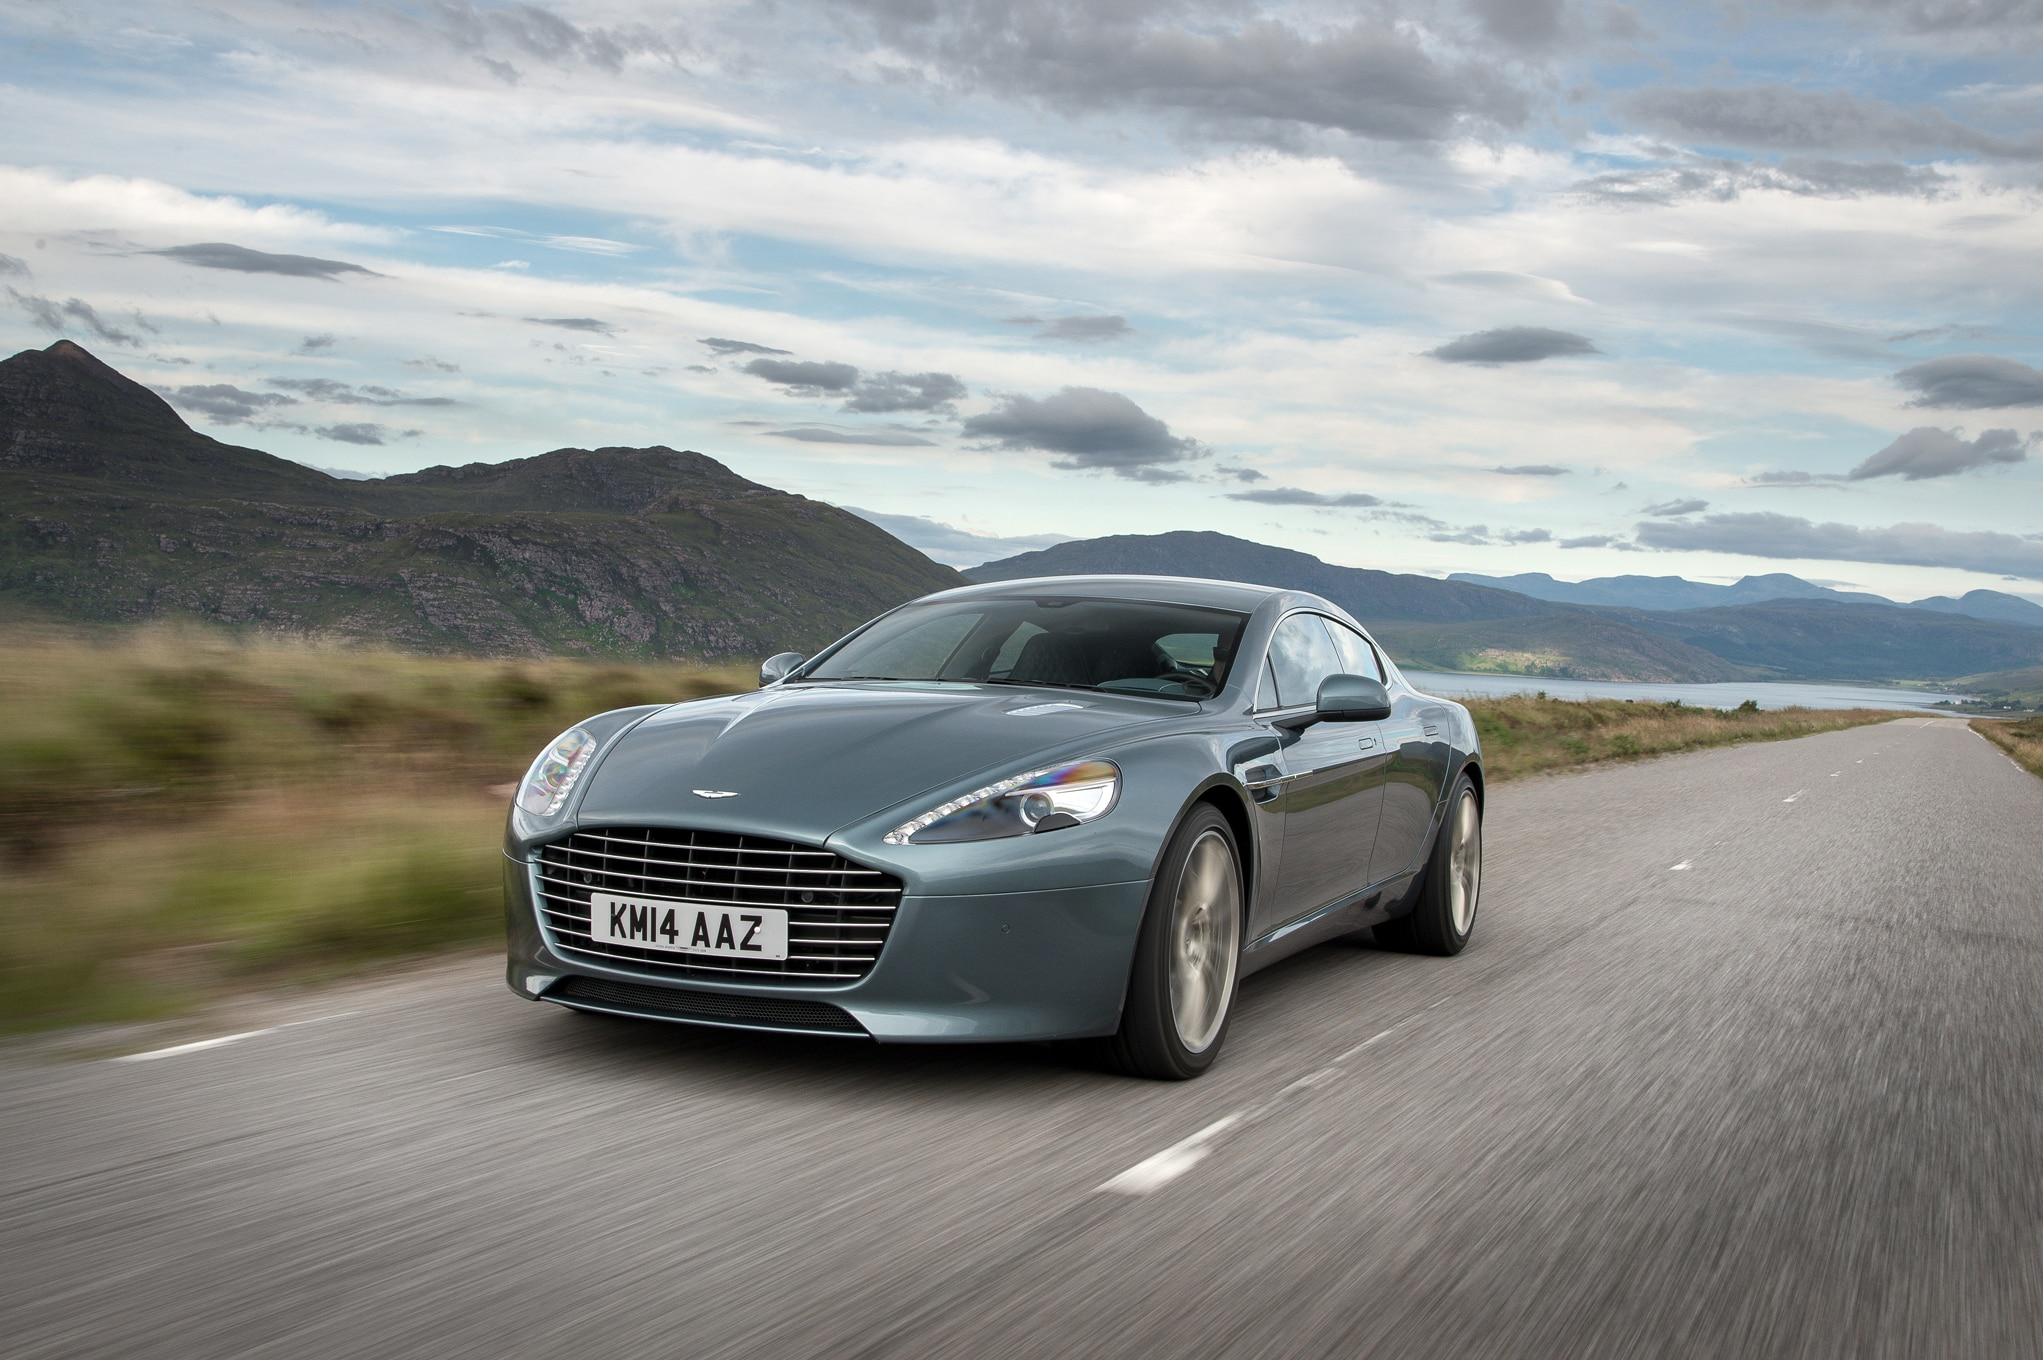 Aston Martin Vanquish Rapide S Review - Aston martin rapide s